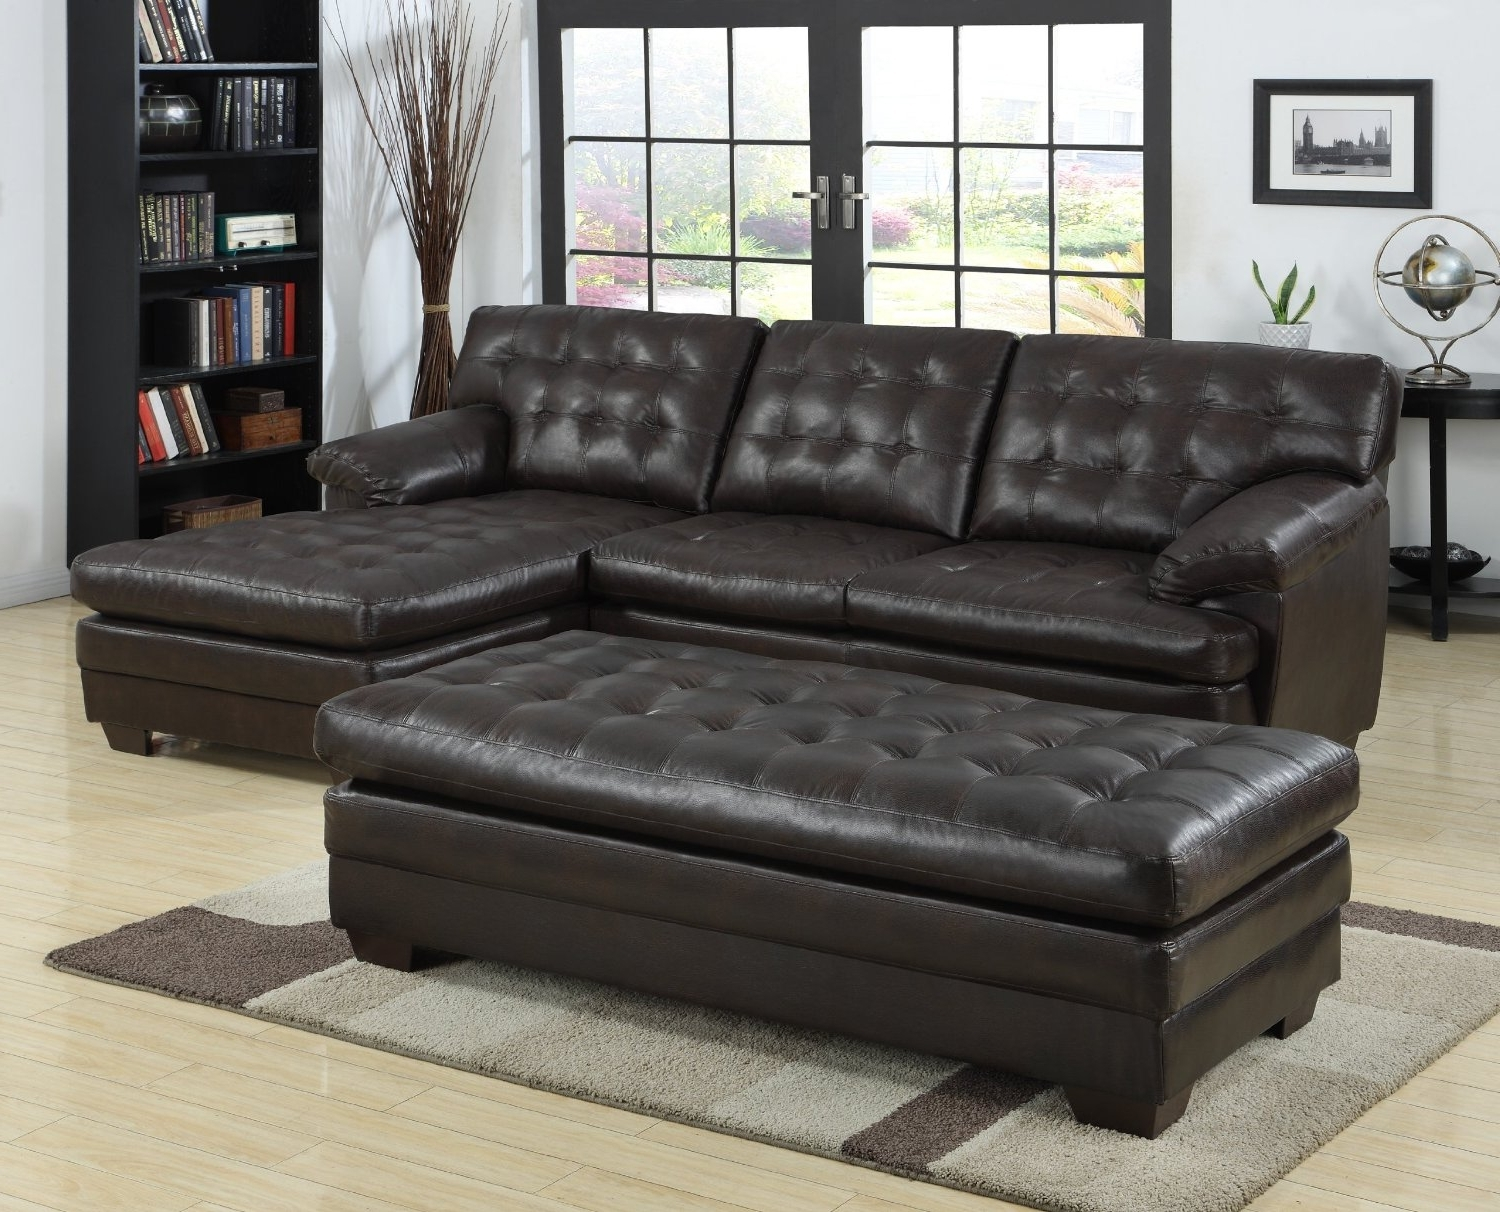 Black Tufted Leather Sectional Sofa With Chaise And Bench Seat Within Famous Sectional Sofas With Chaise Lounge And Ottoman (View 5 of 20)